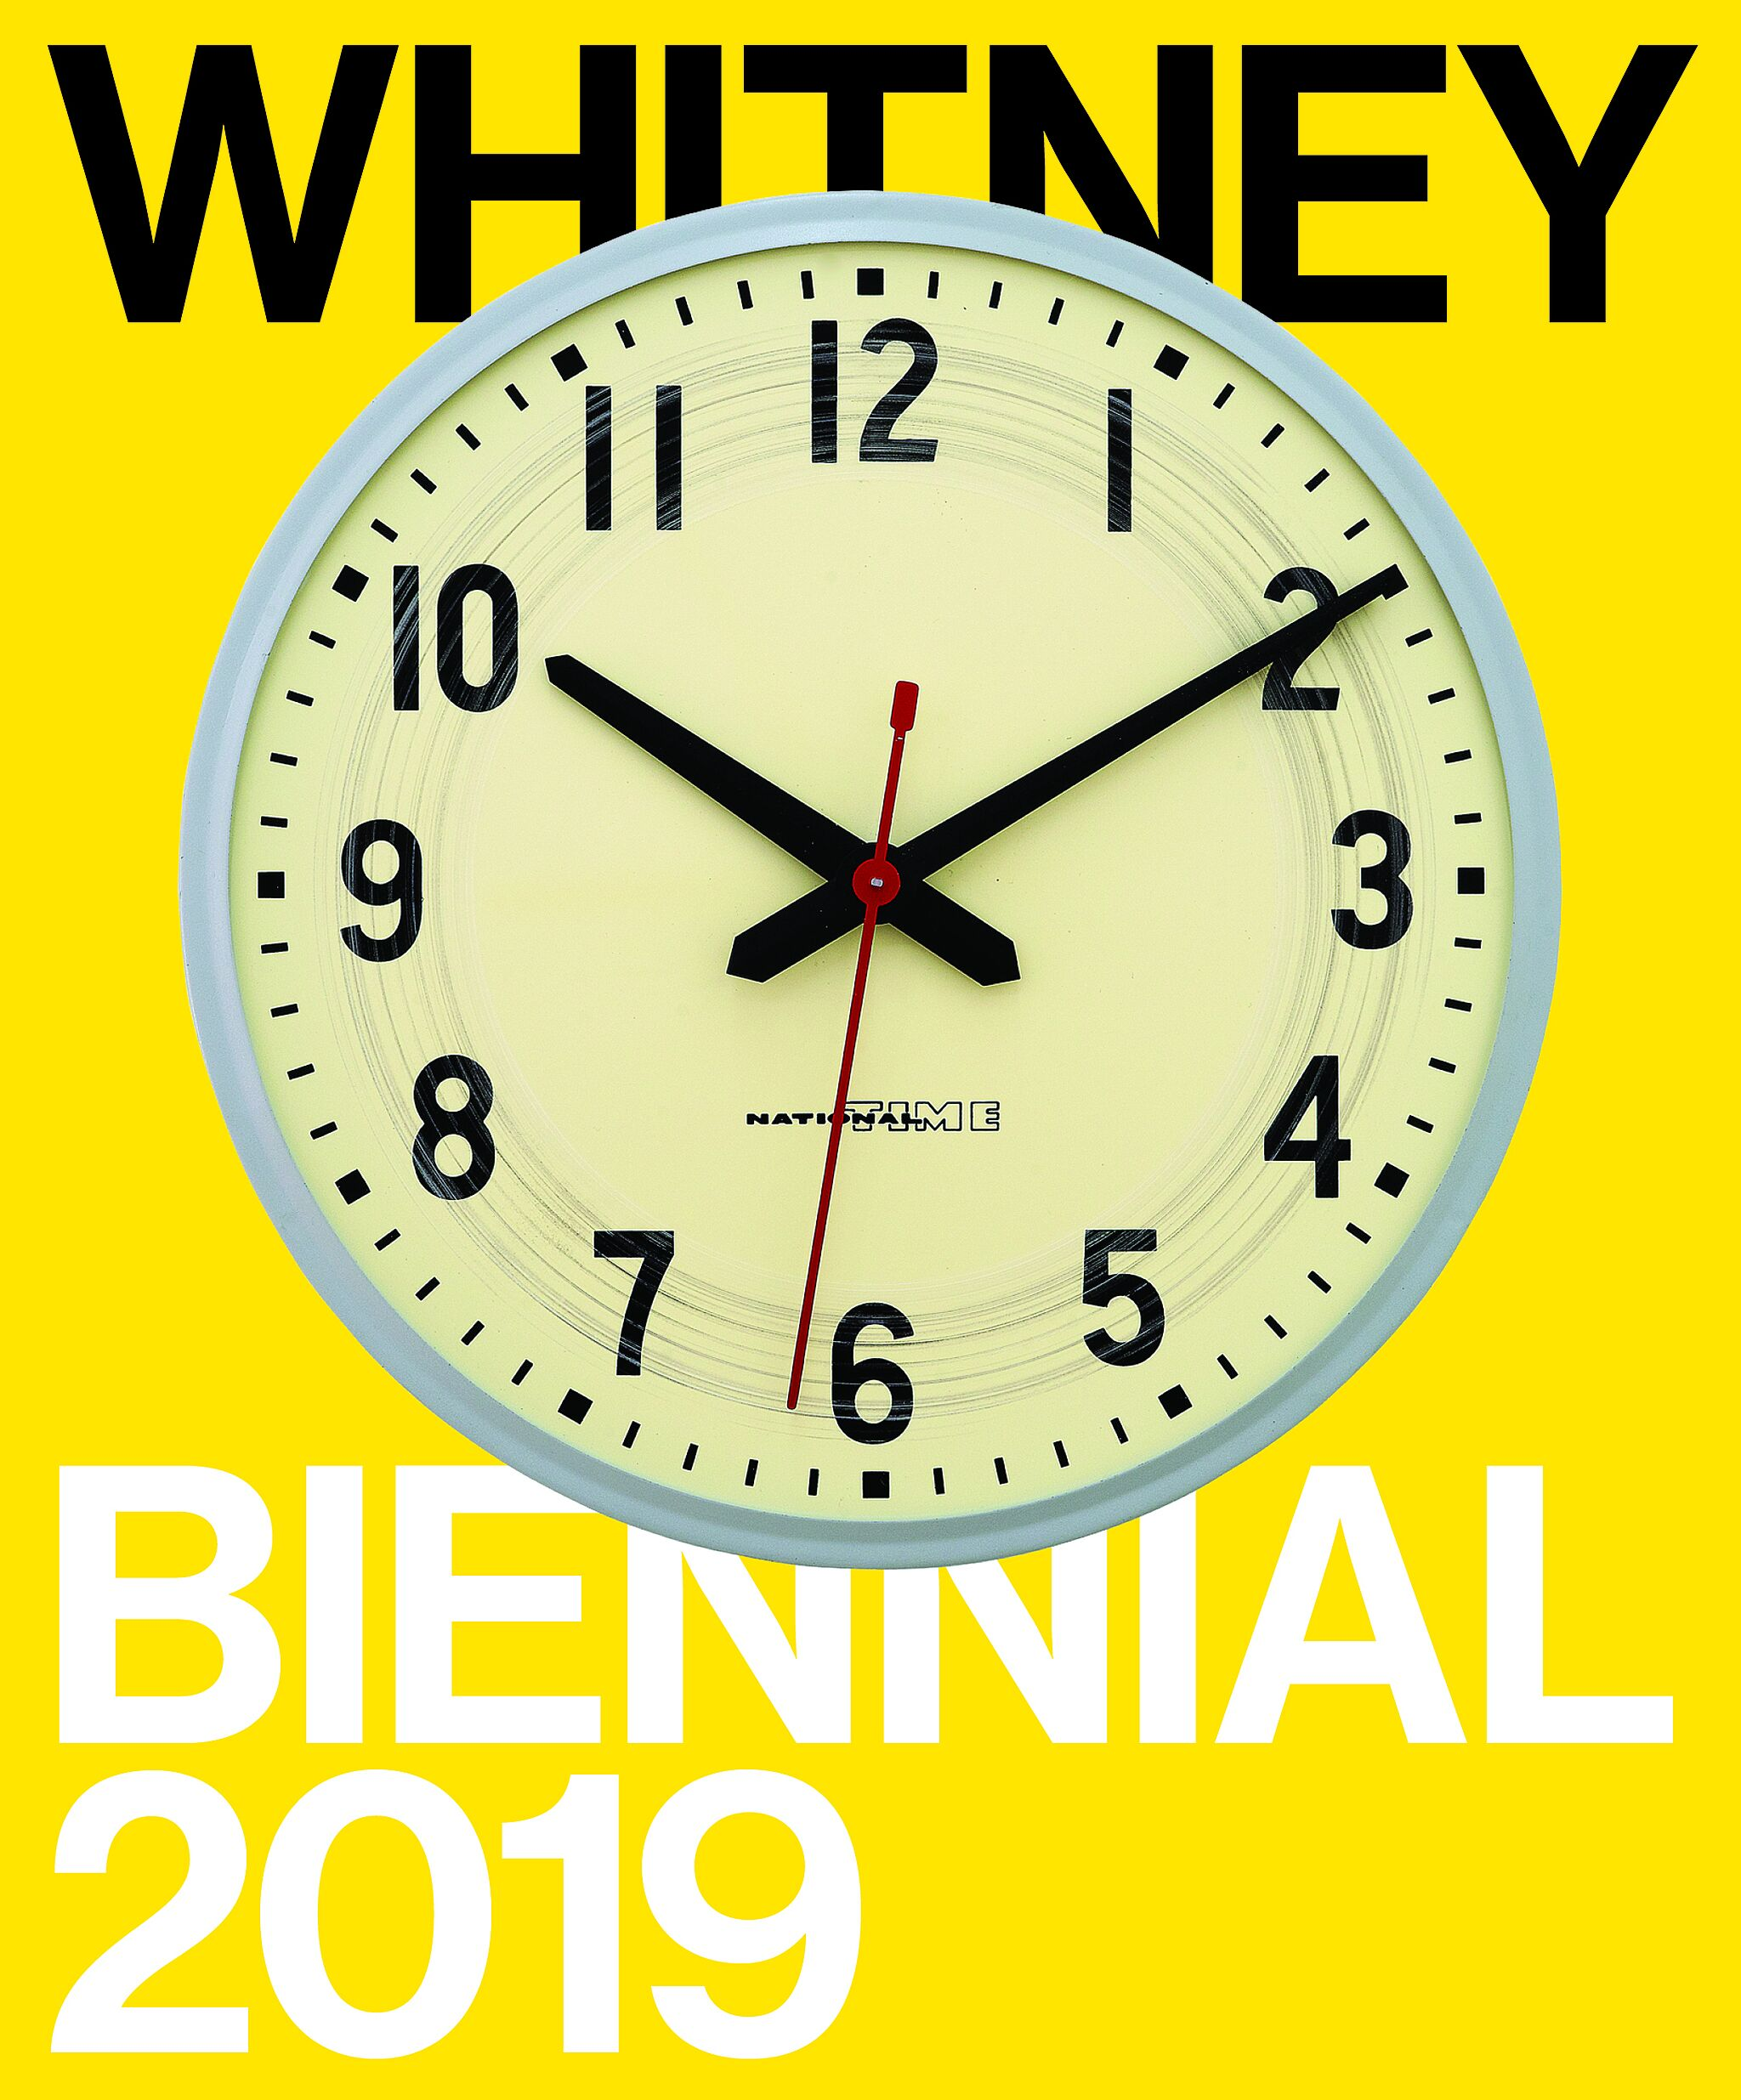 Text that says Whitney Biennial 2019 with a round clock in the middle.